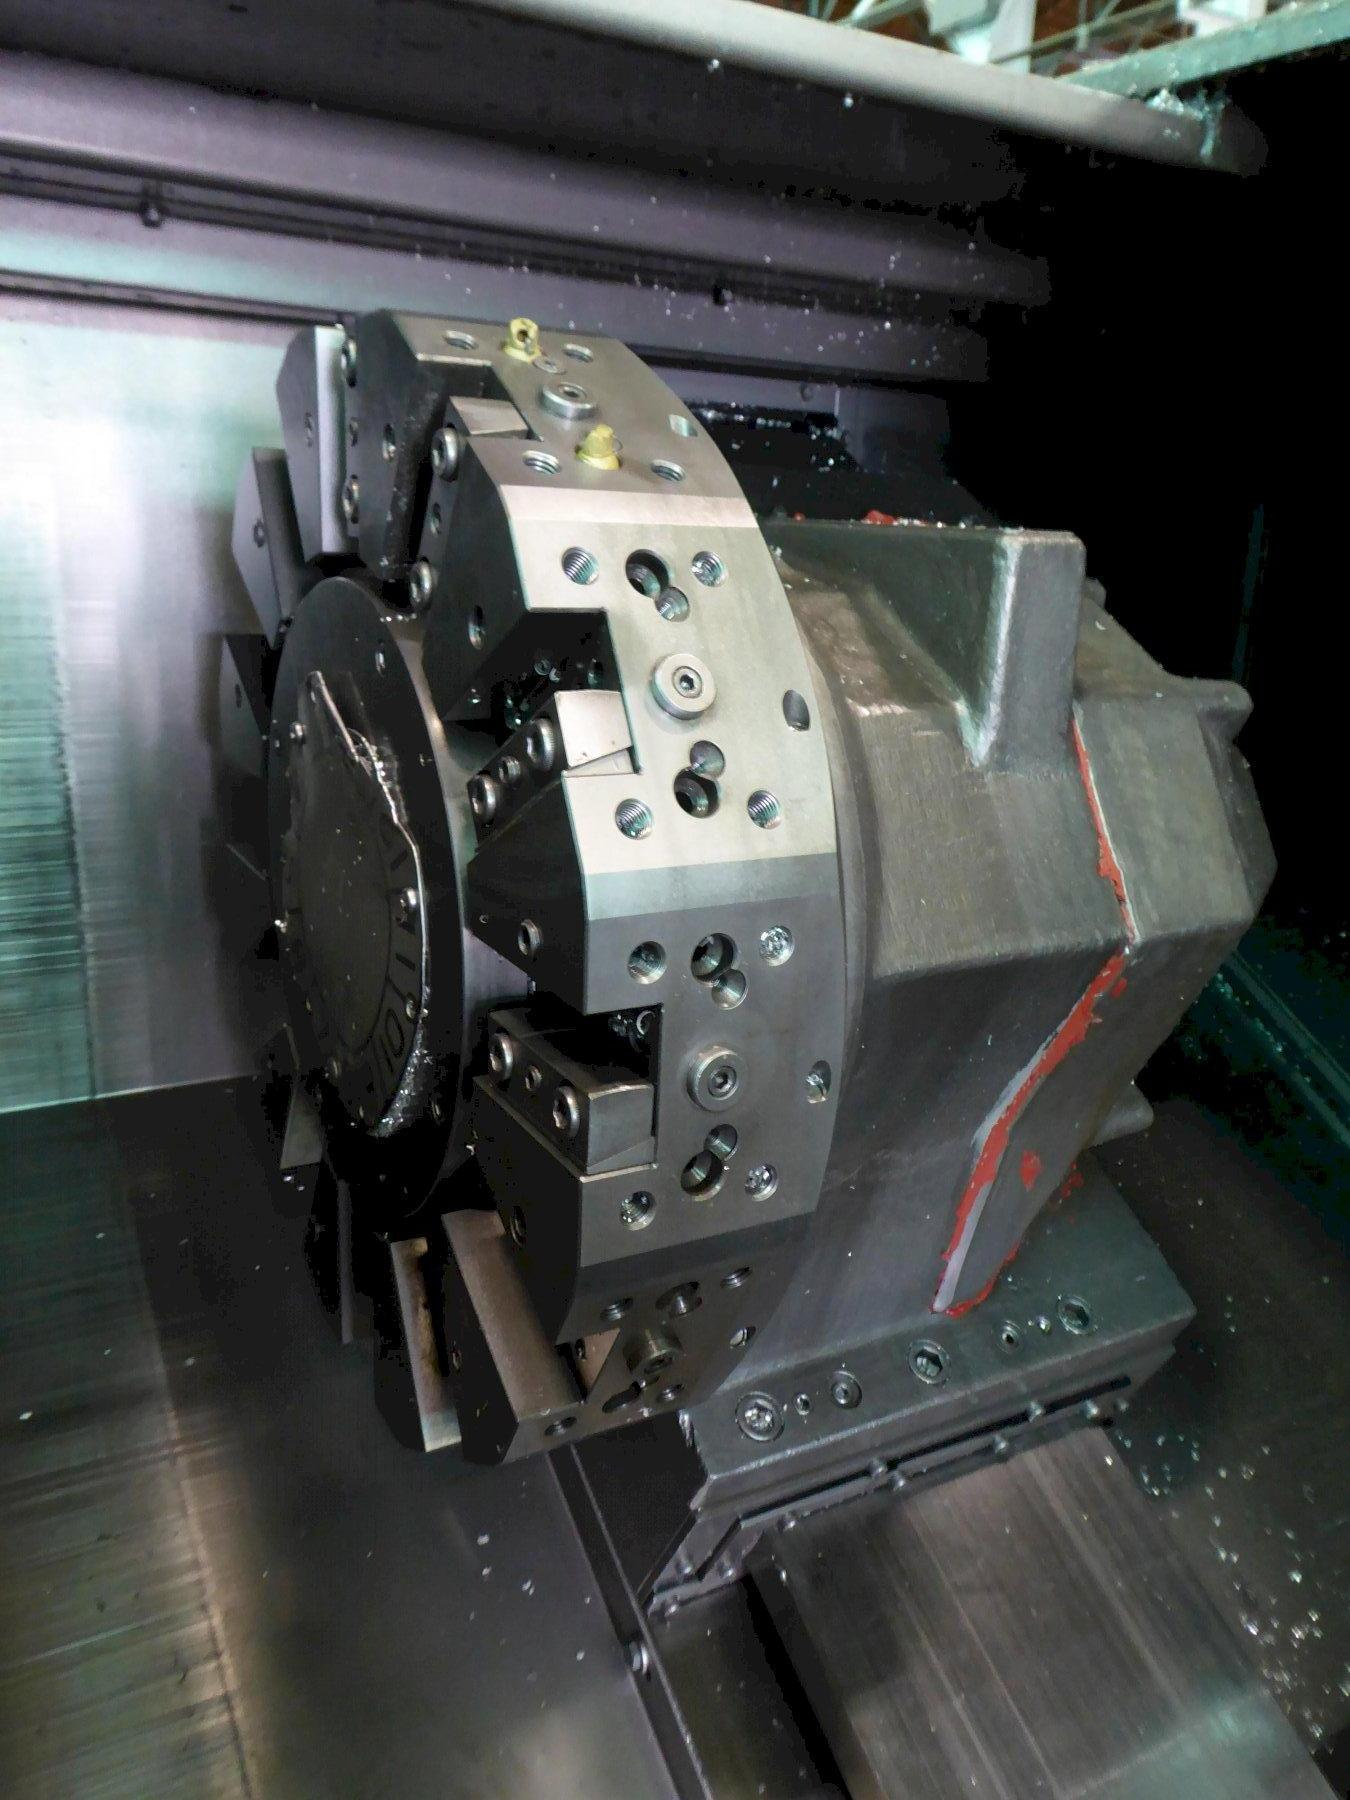 Okuma LB-25 CNC Lathe, OSP5020L Control, Just Removed From Service, Low Price